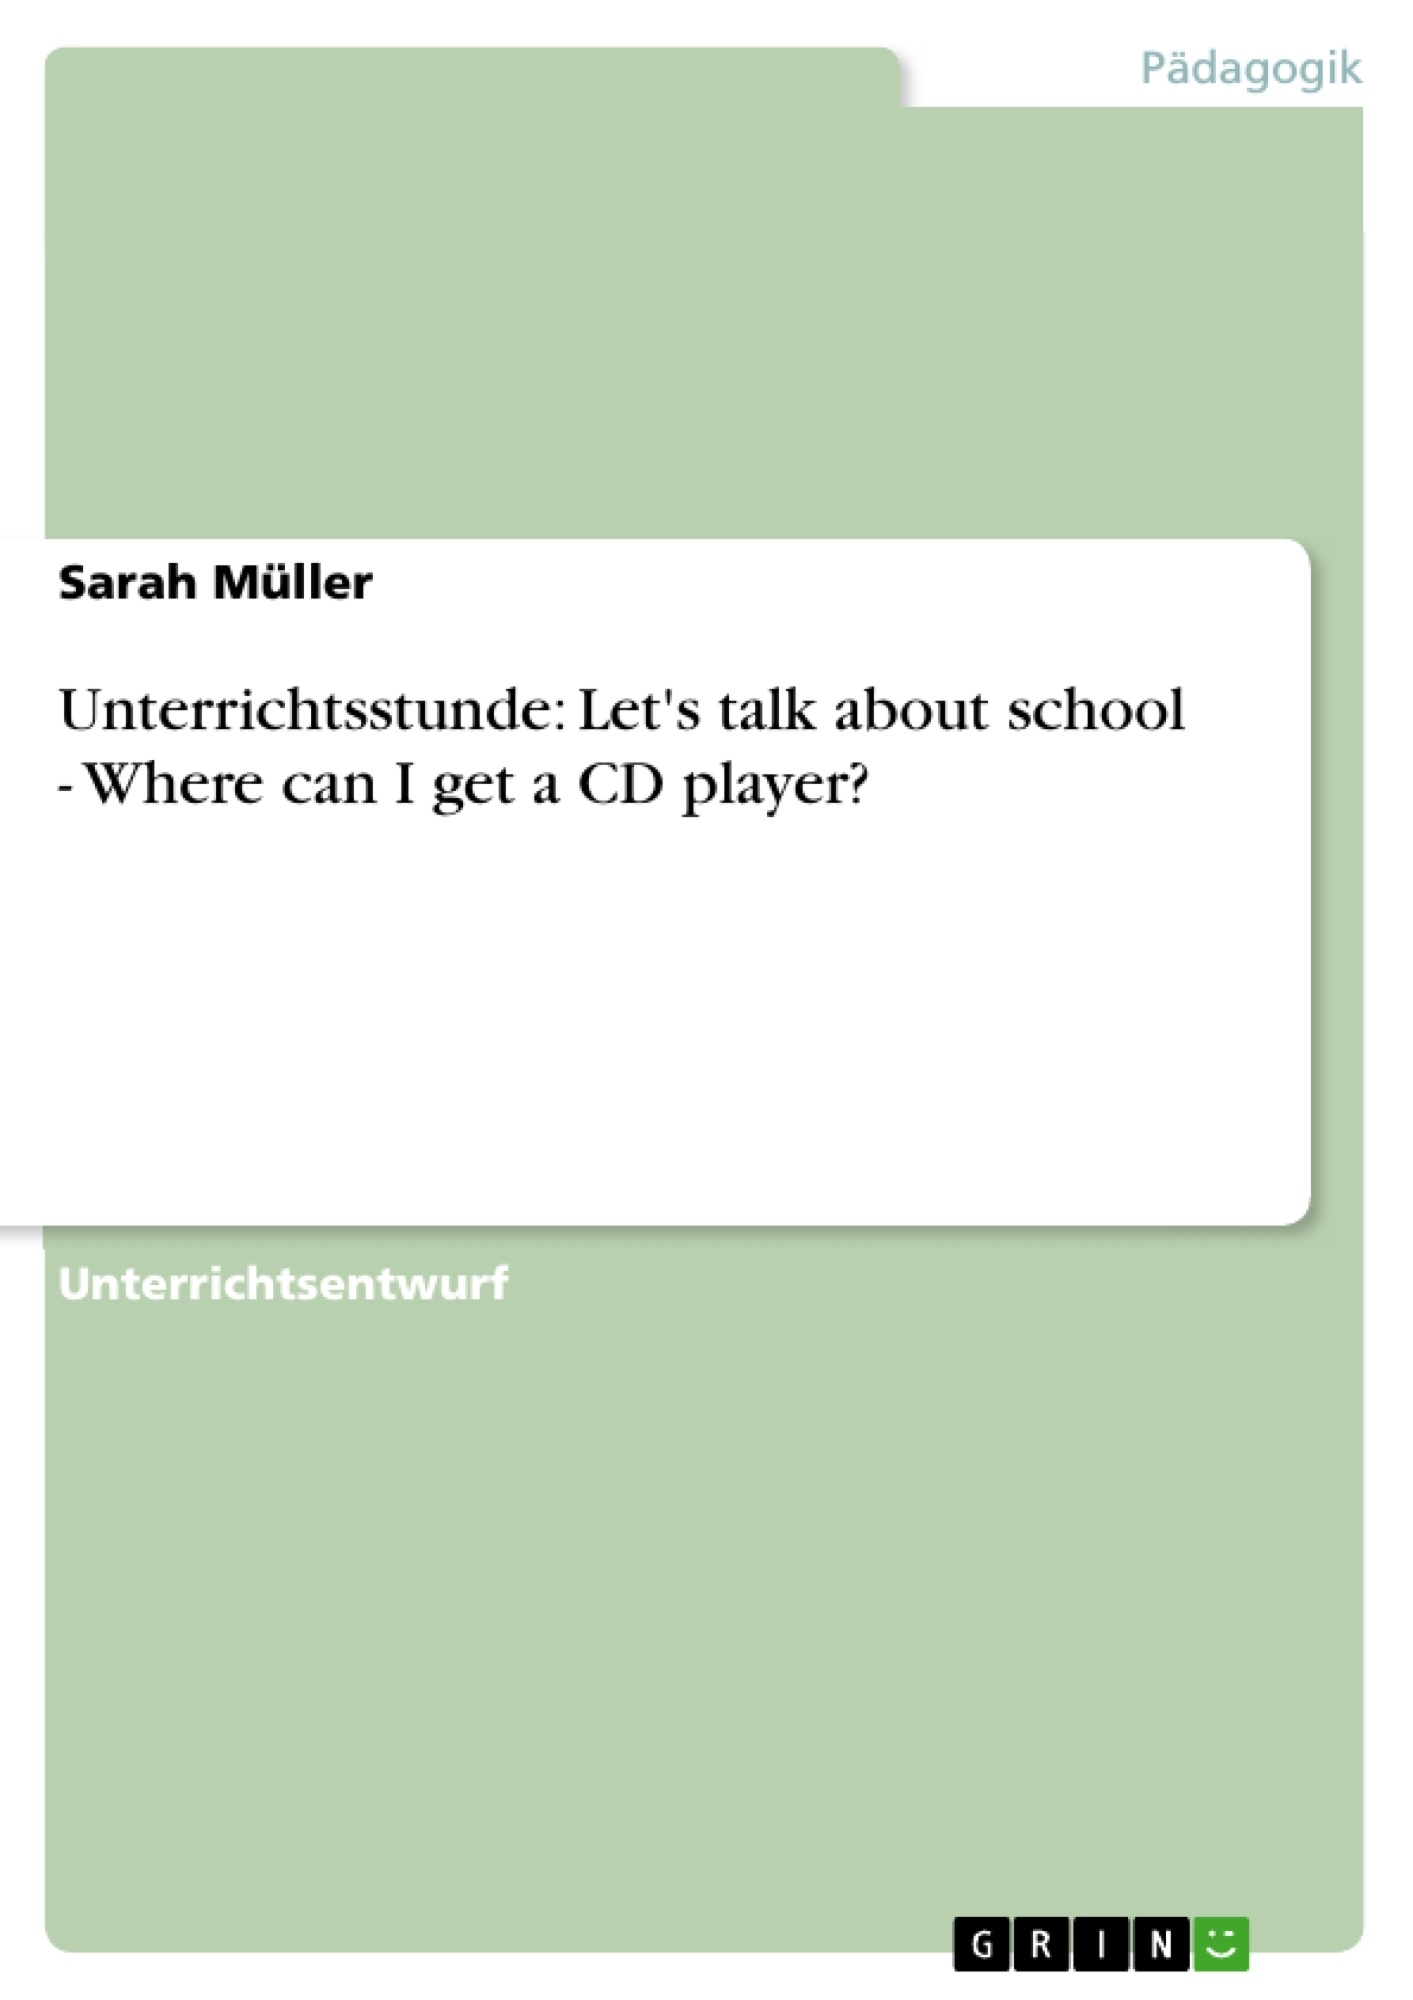 Titel: Unterrichtsstunde: Let's talk about school - Where can I get a CD player?